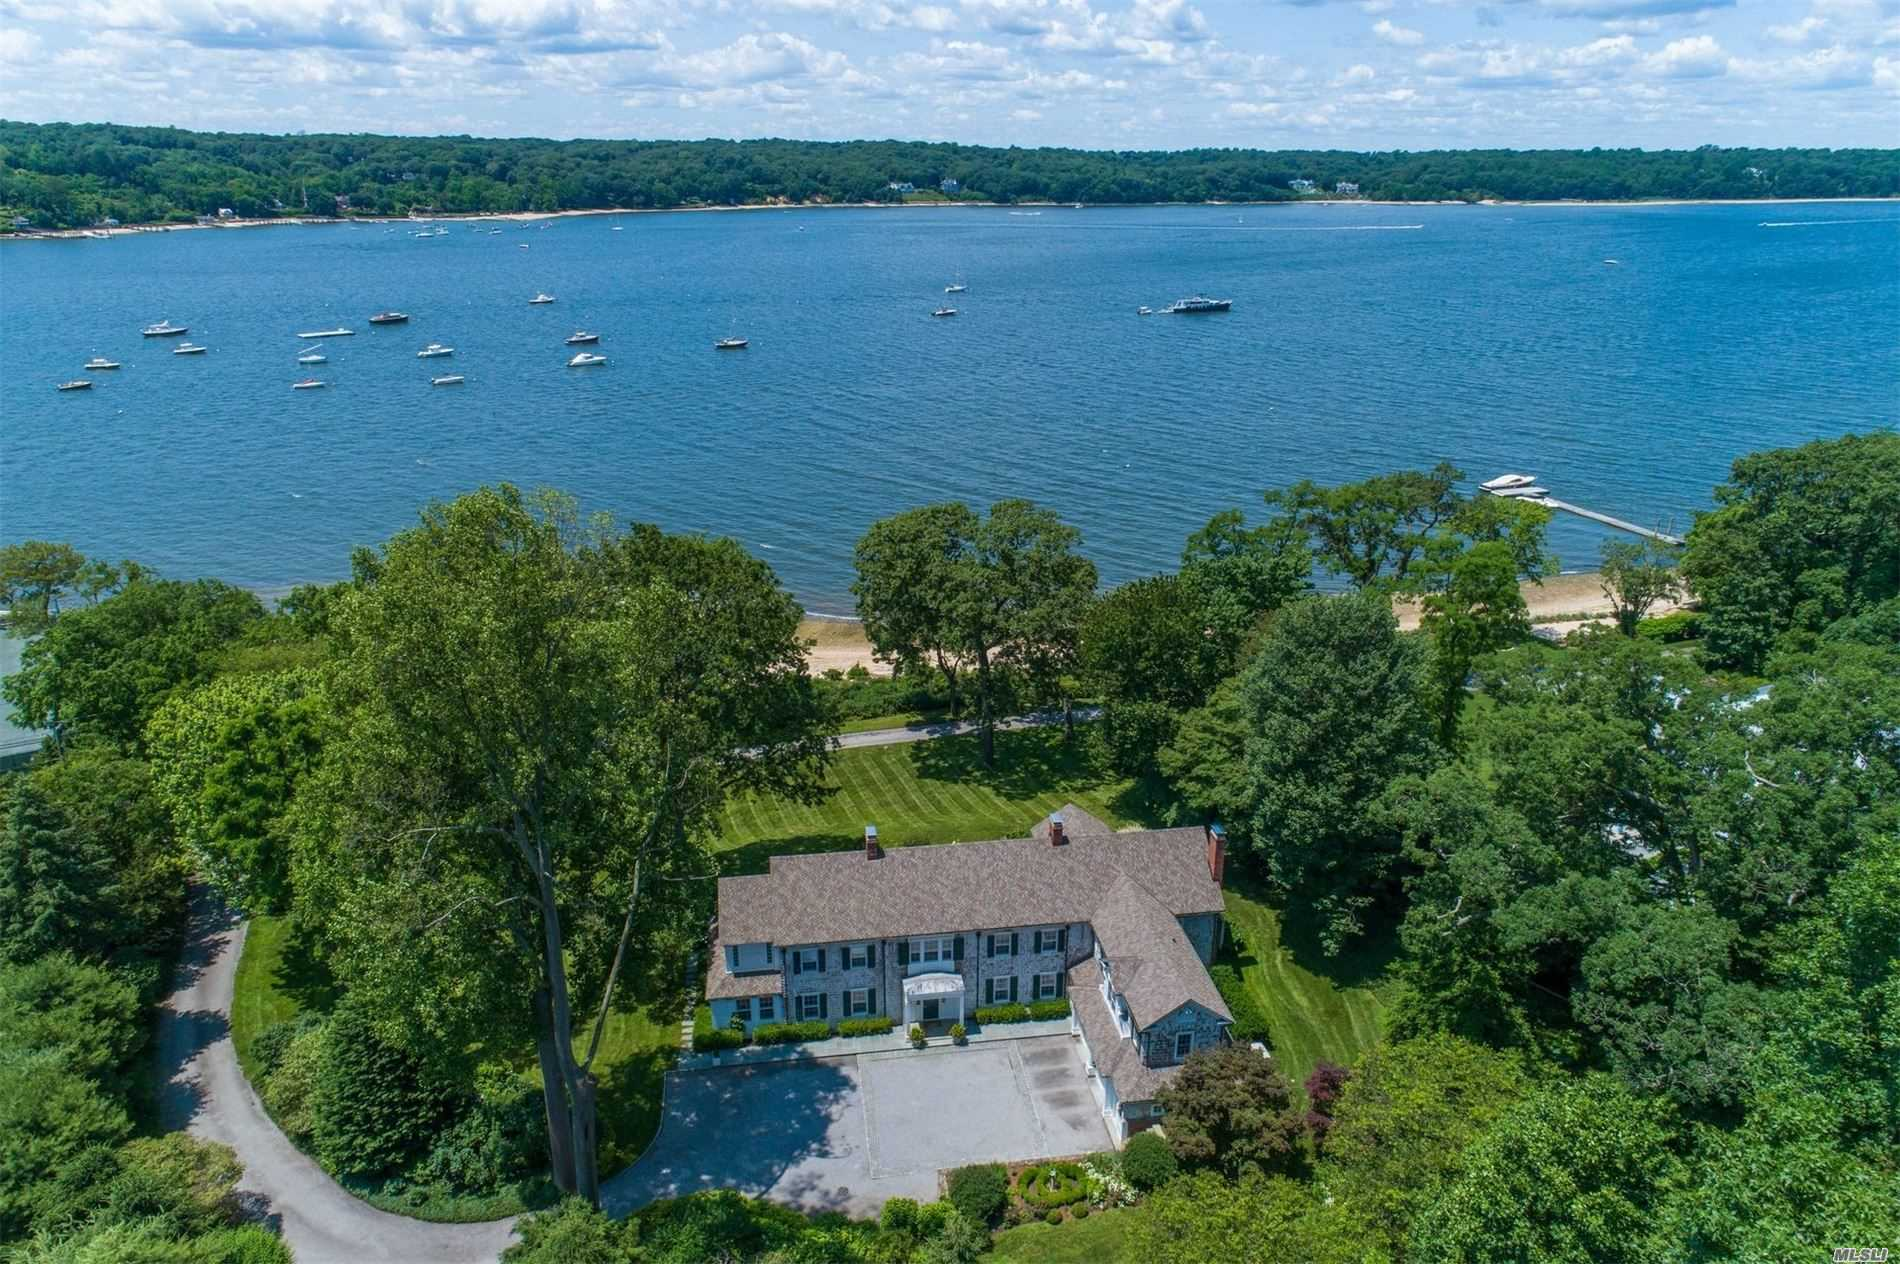 House for sale Cold Spring Hrbr, NY 108 Shore Rd